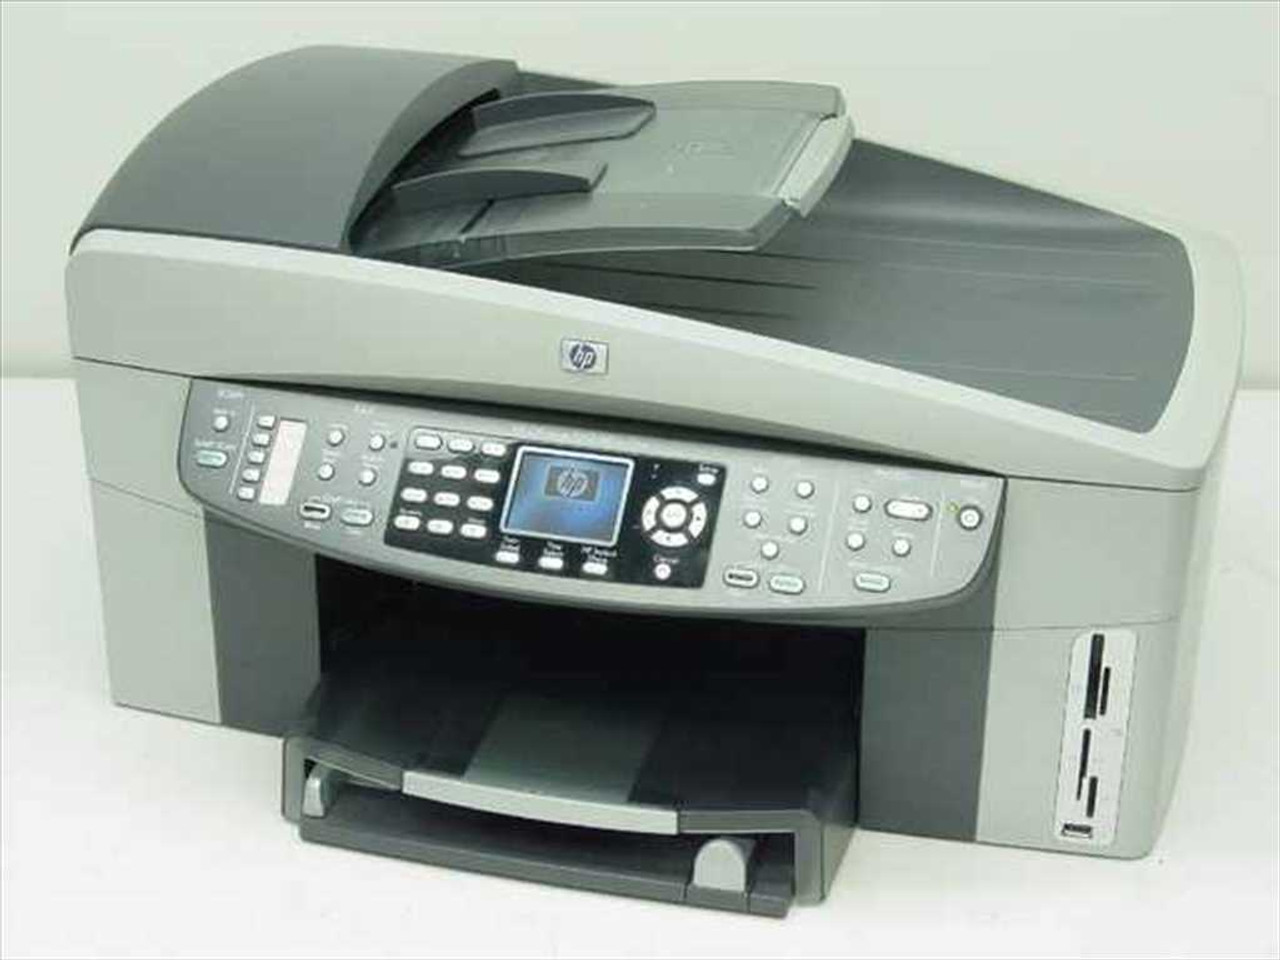 hewlett packard q3461a hp officejet 7310 all in one printer scanner rh recycledgoods com Power Supply for HP 7300 HP 7300 Printer Installation